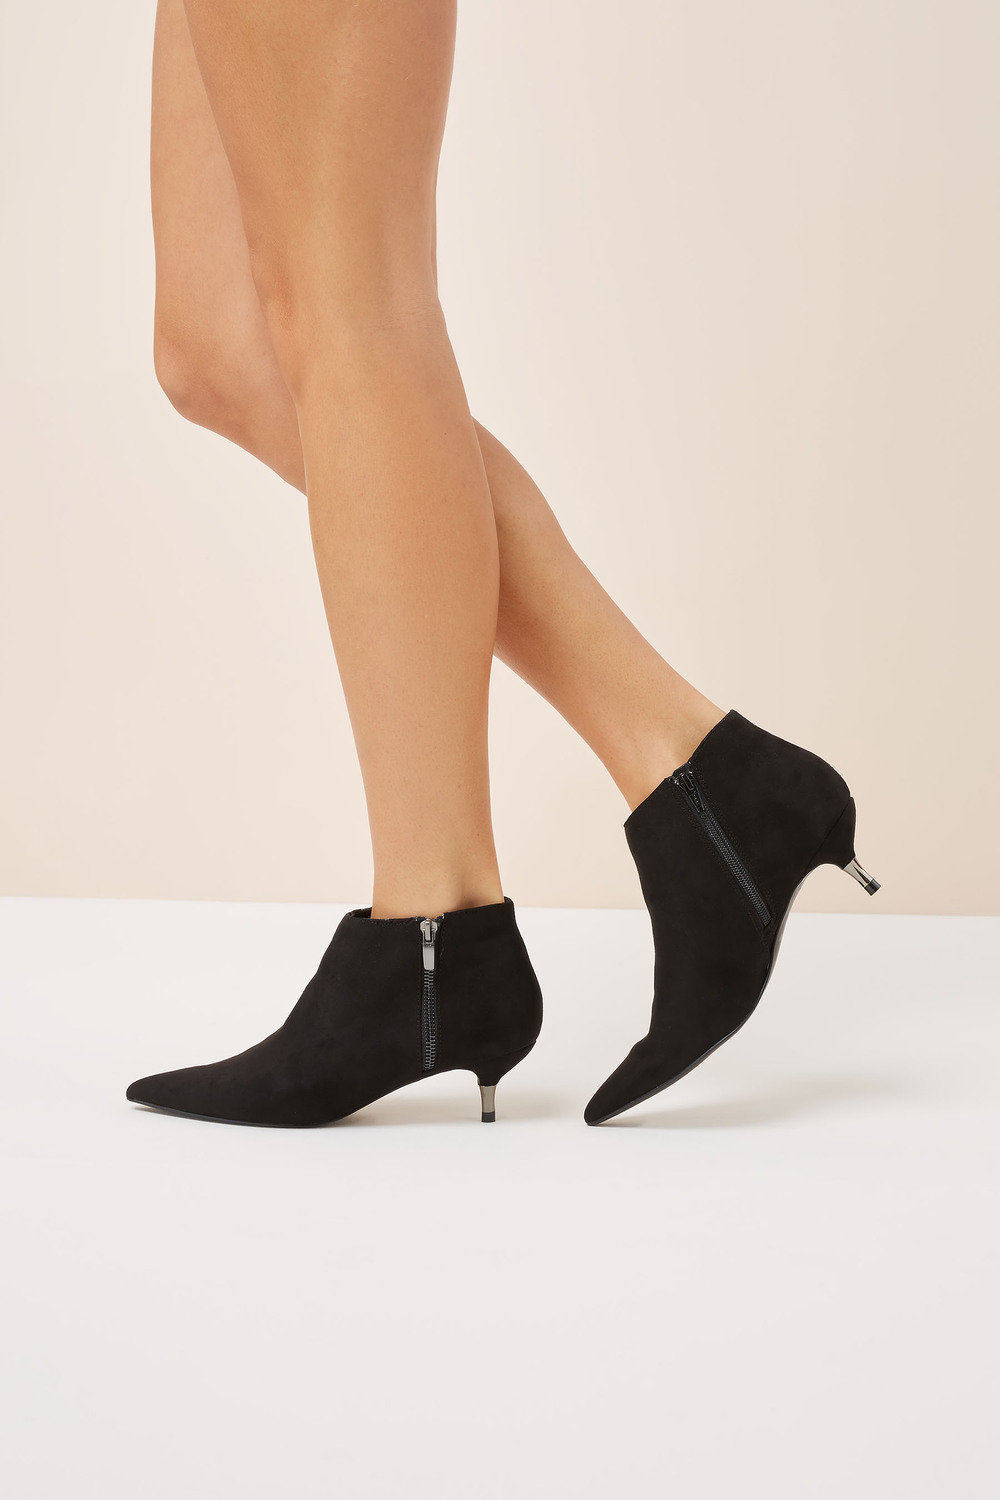 86add4cc526 Next Kitten Heel Ankle Boots Online